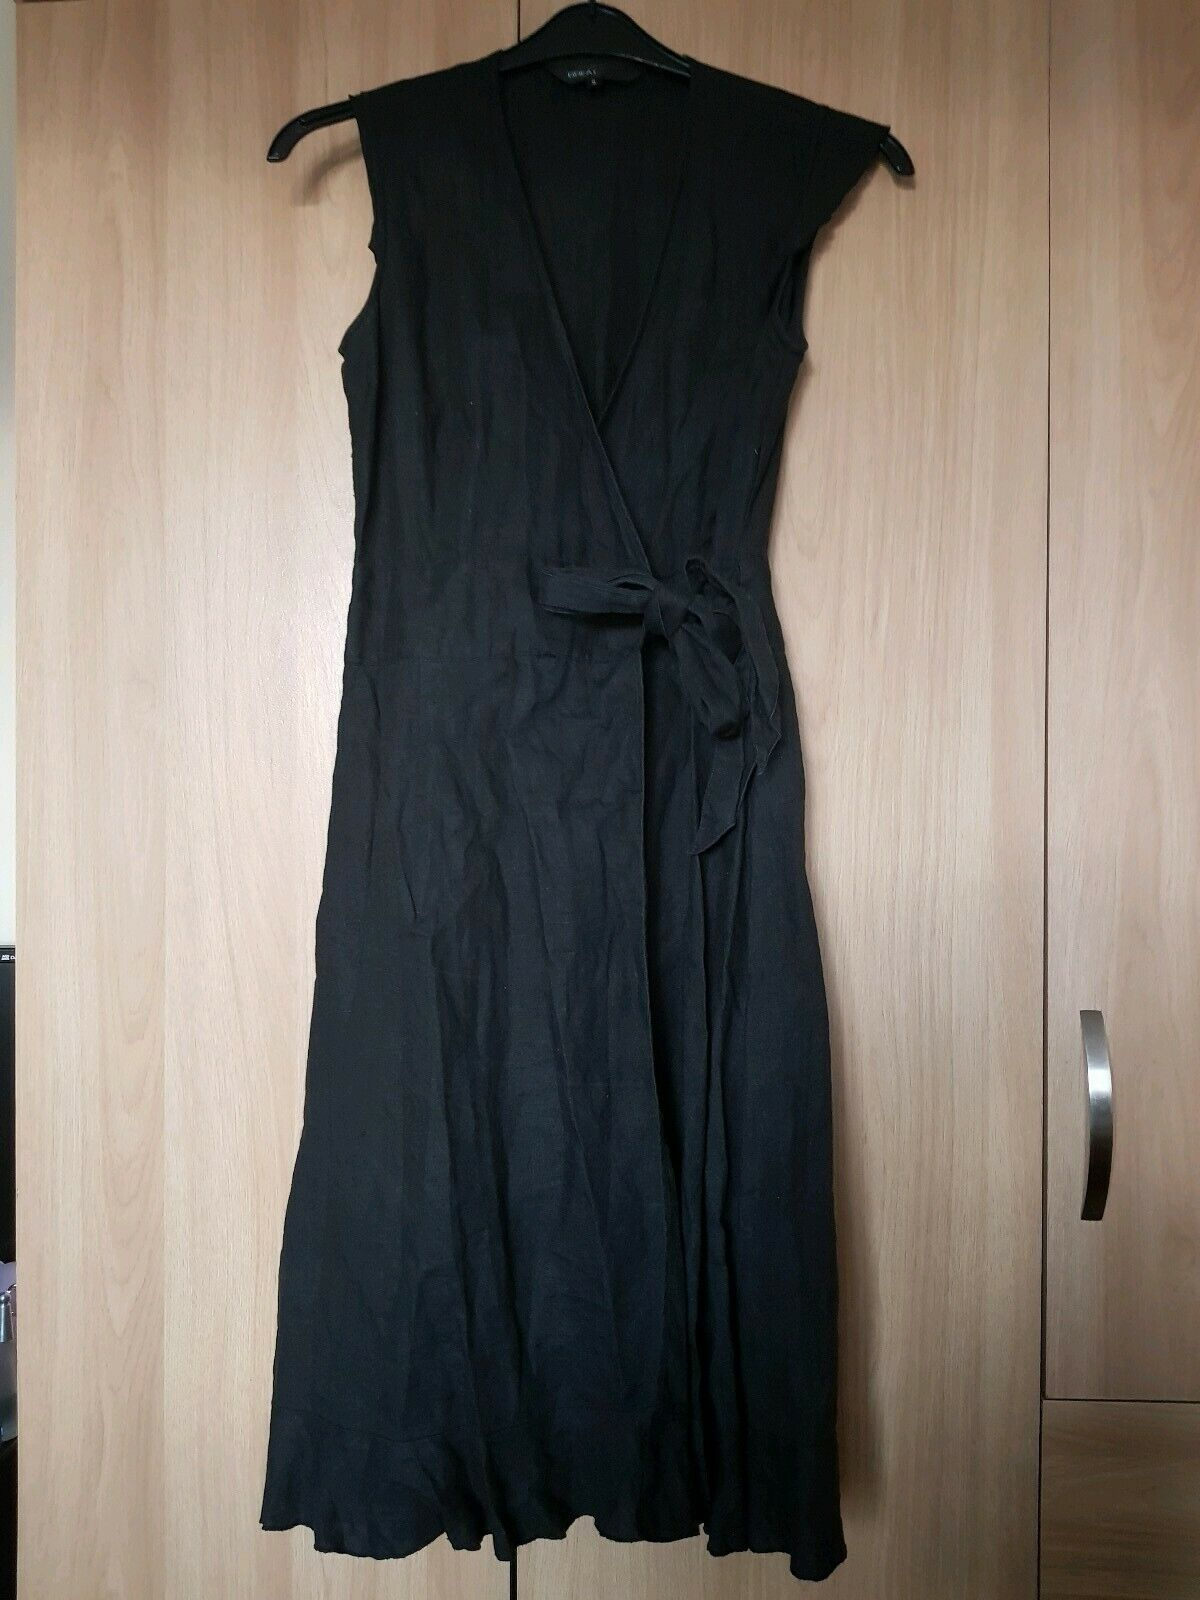 Great Plains Linen Black Wrap Dress Size Small Uk 8/10